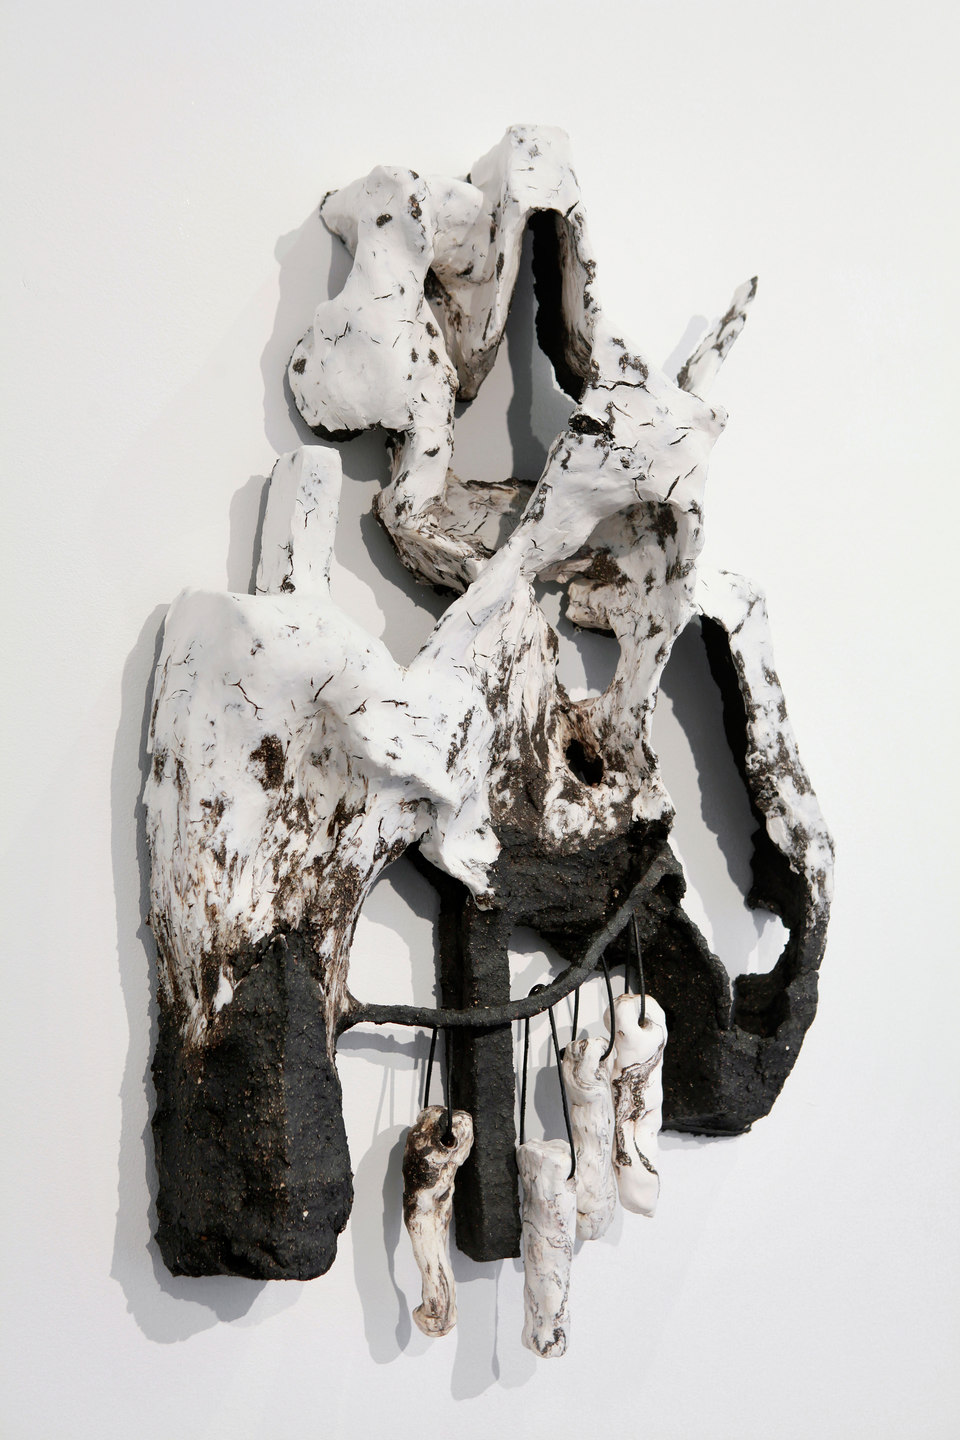 Peles Empire, Formation, 'formation 11', 2013, unglazed porcelain with black grog, h. 64 x w. 36 x d. 15 cm, Cell Project Space